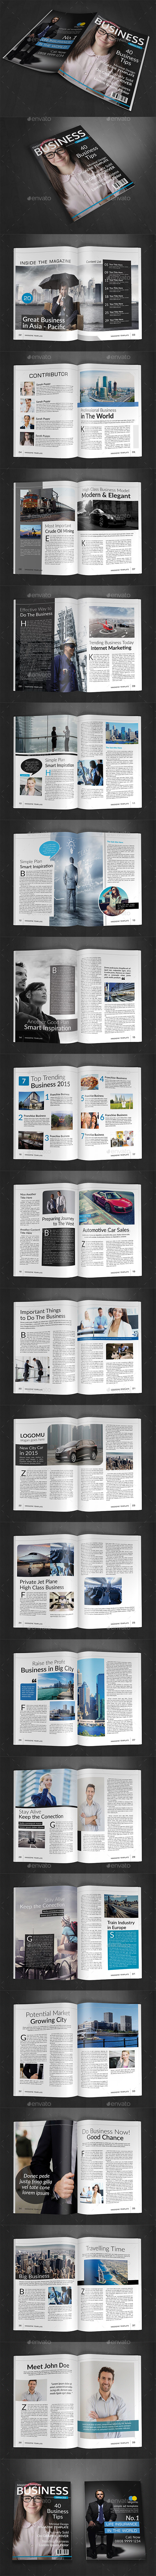 GraphicRiver A4 Magazine Template Vol.9 9684320